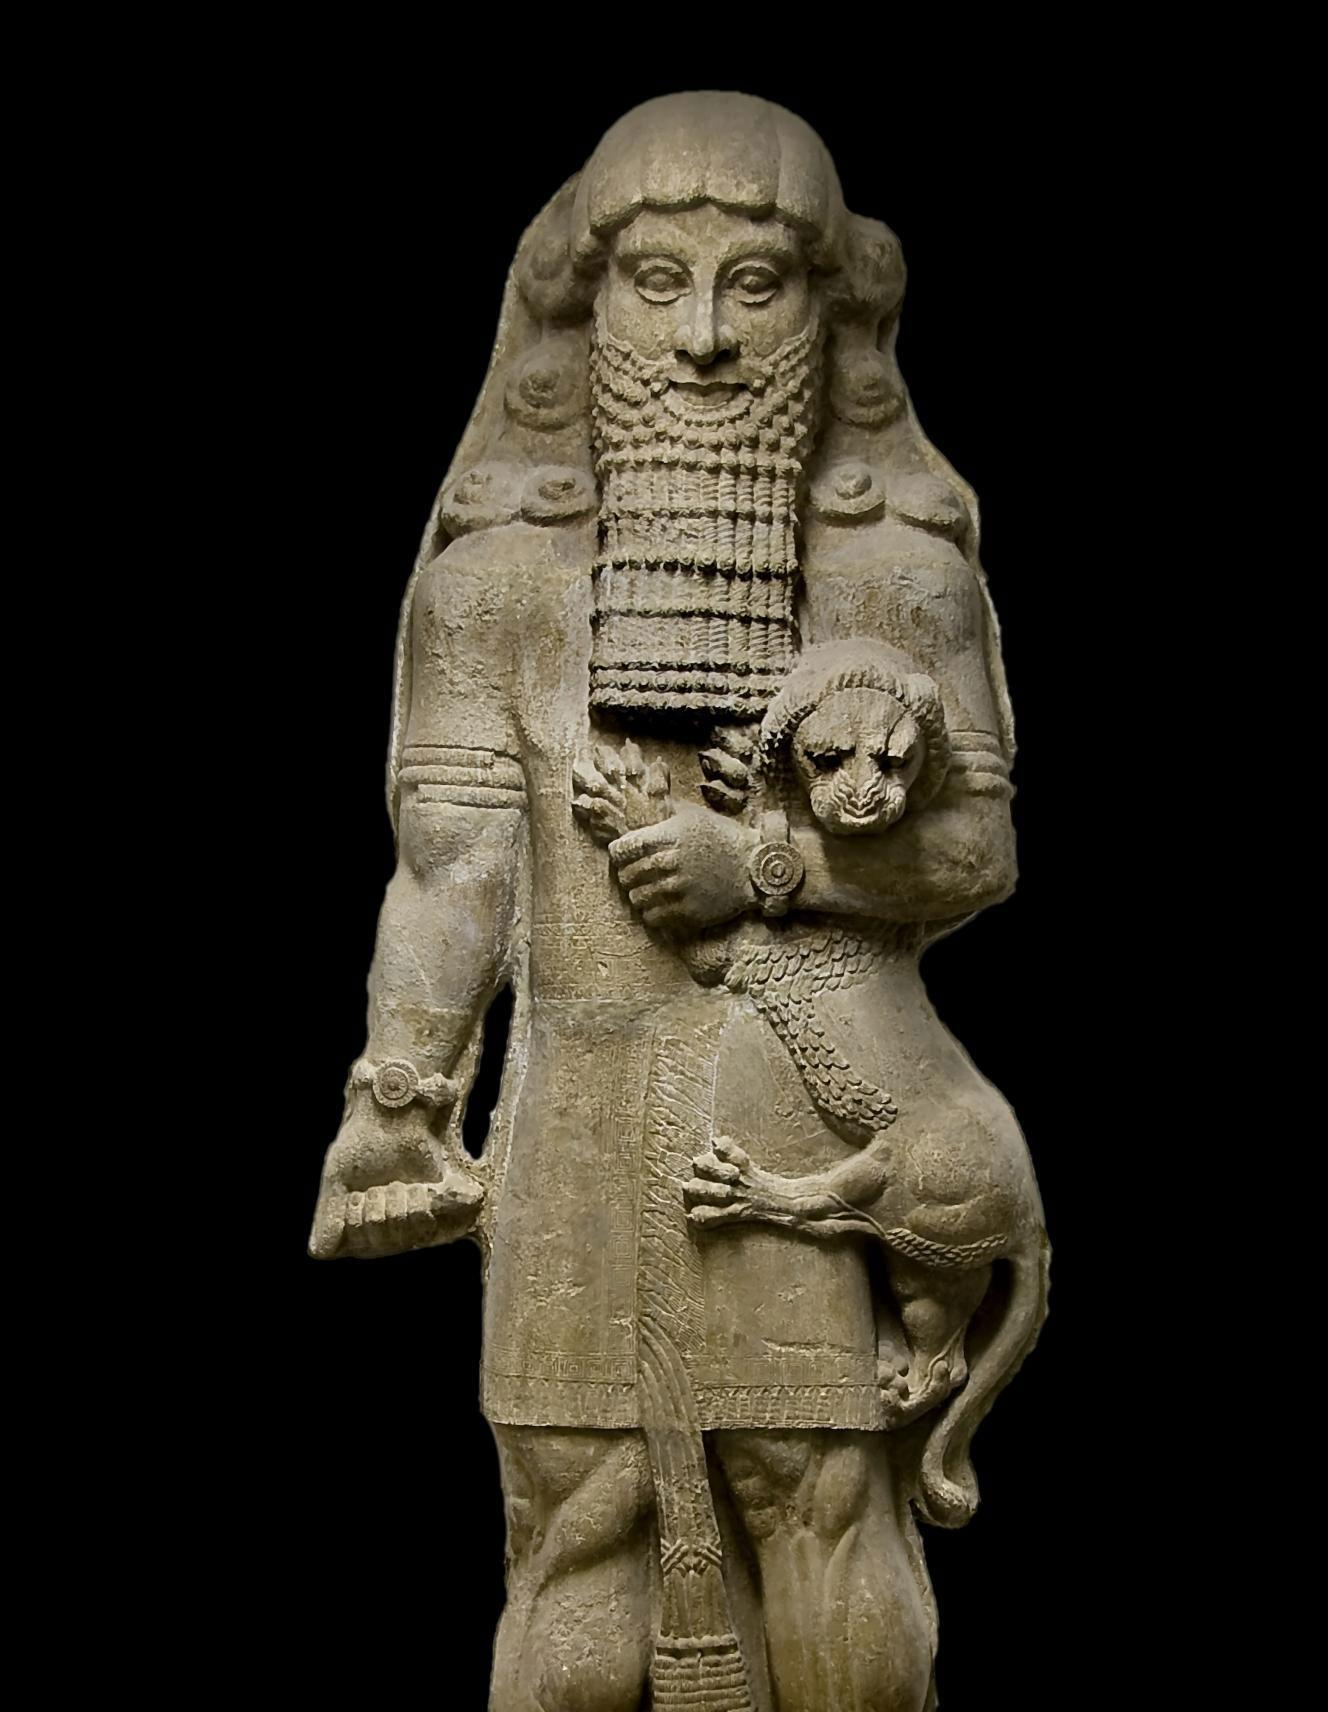 How does the Epic of Gilgamesh present the idea of good vs evil?